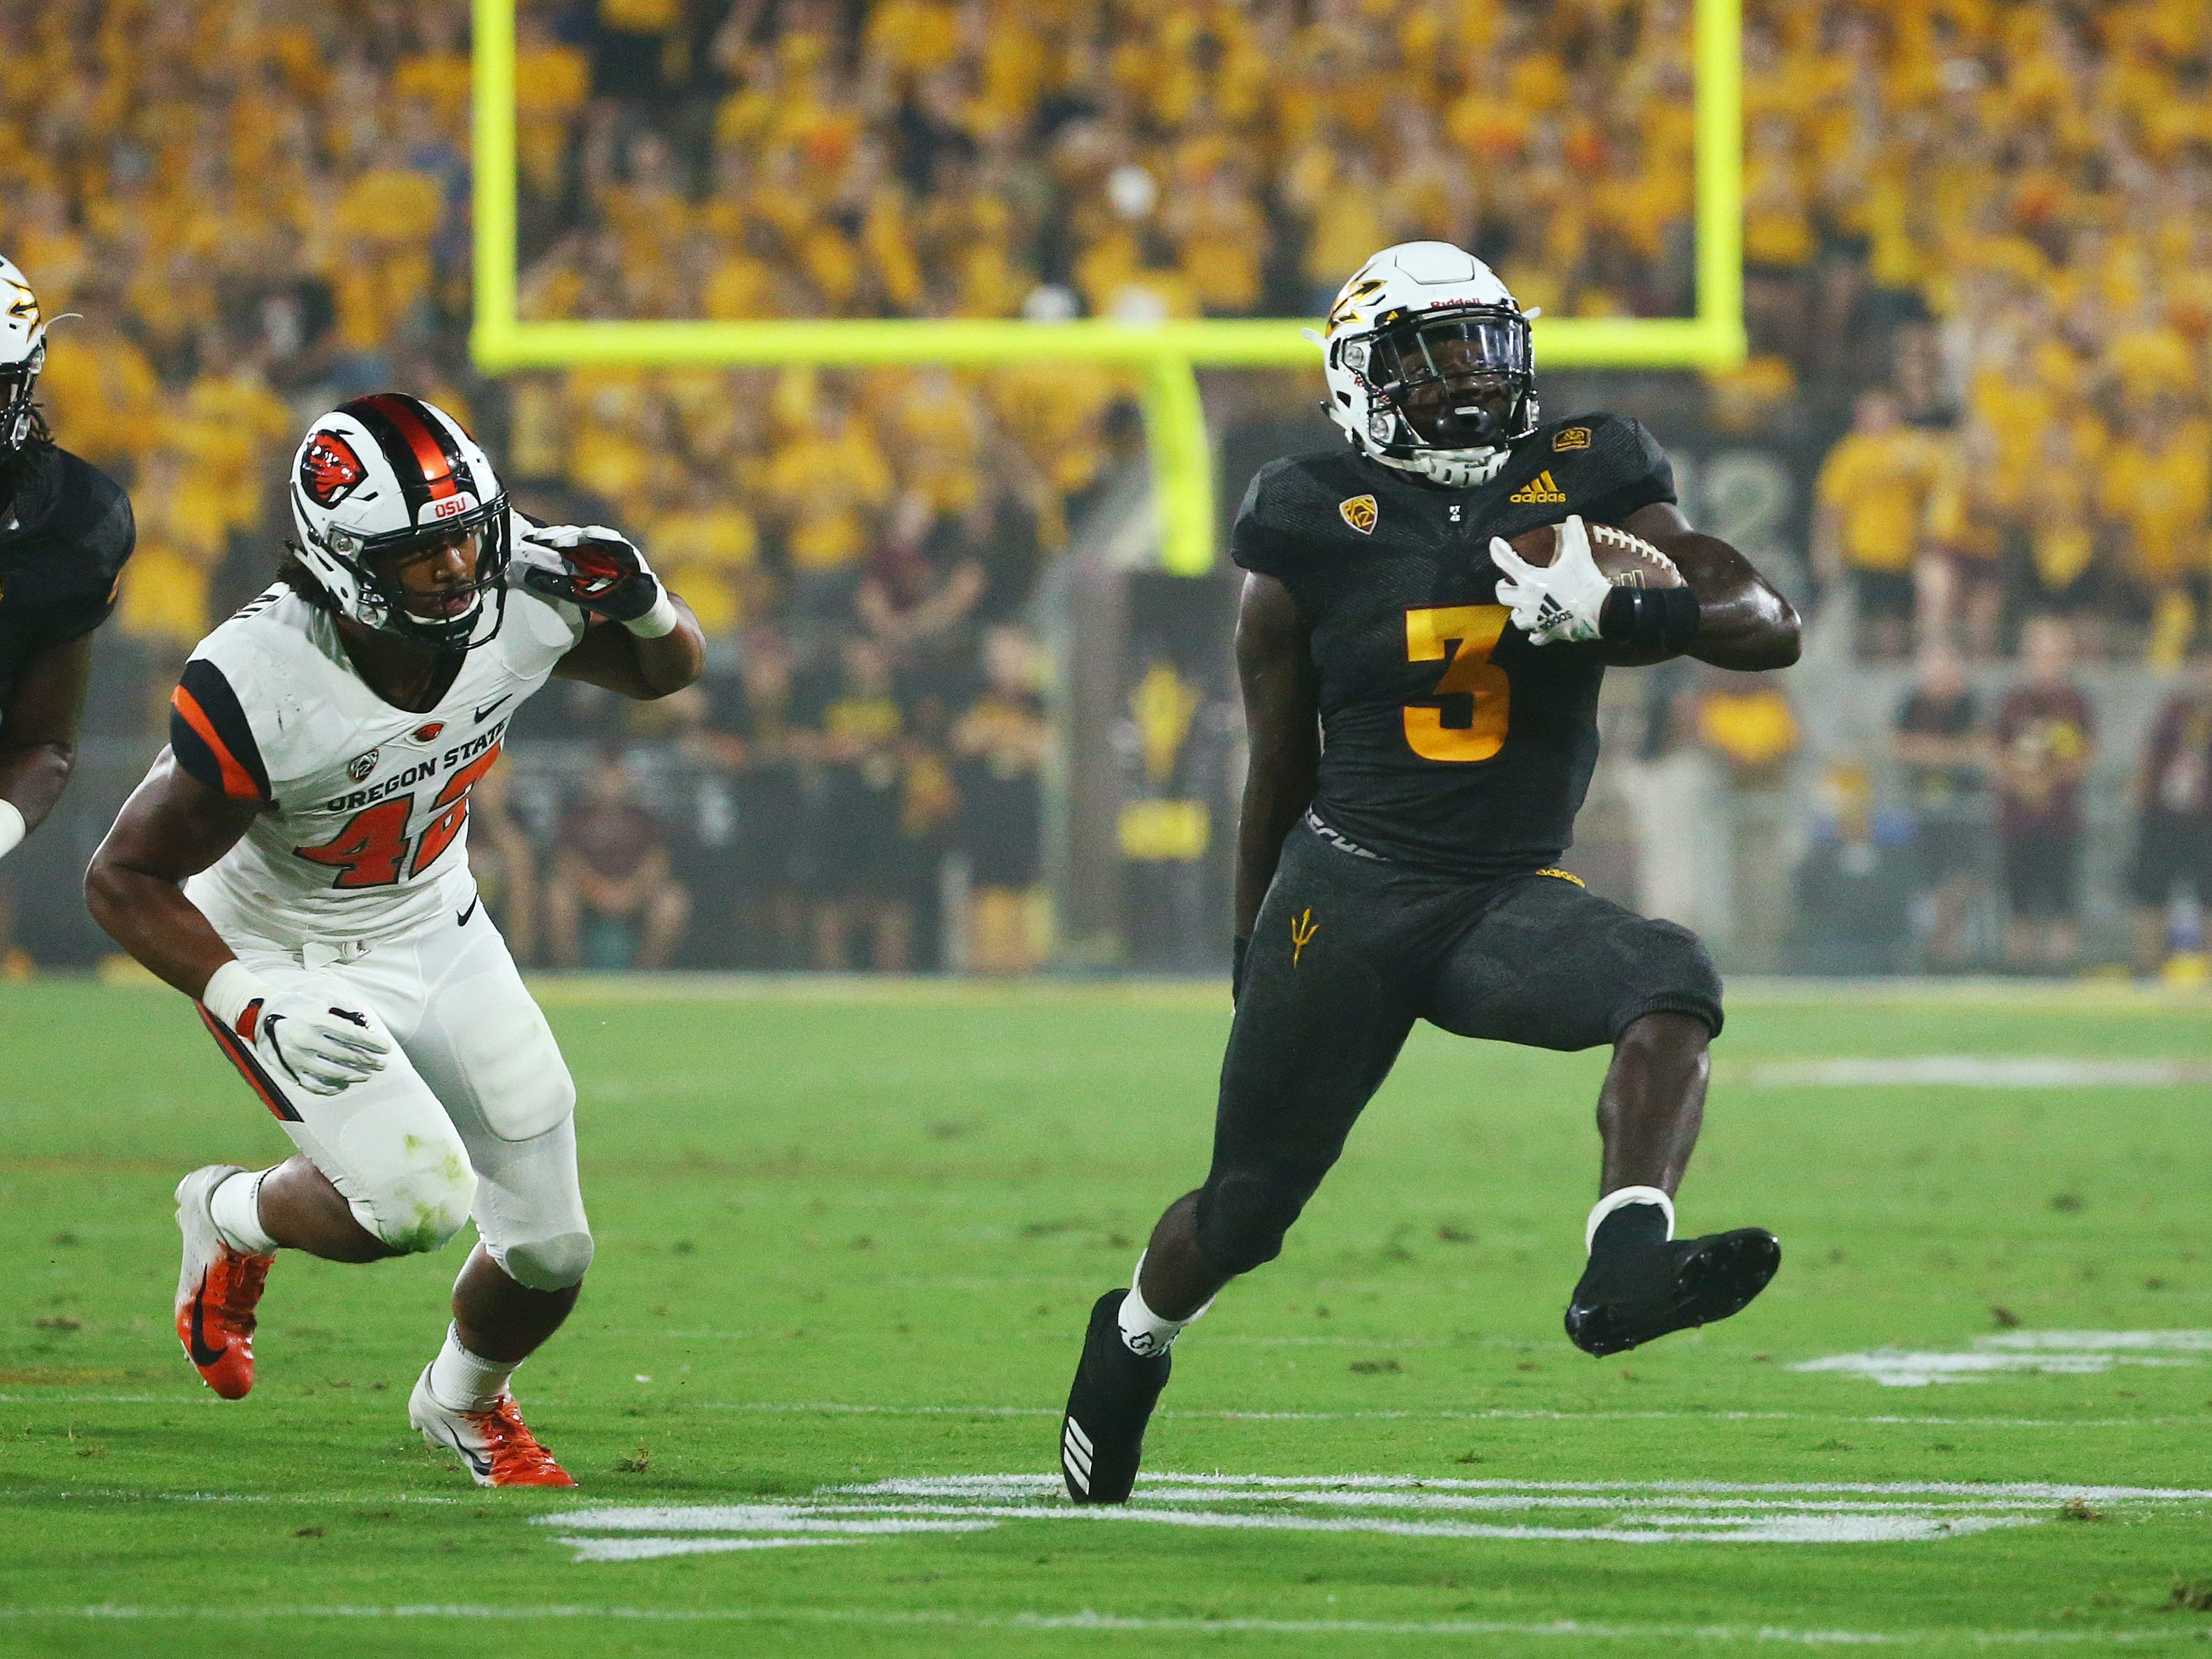 Arizona State running back Eno Benjamin runs for a first down against Oregon State in the first half on Sep. 29, 2018, at Sun Devil Stadium.